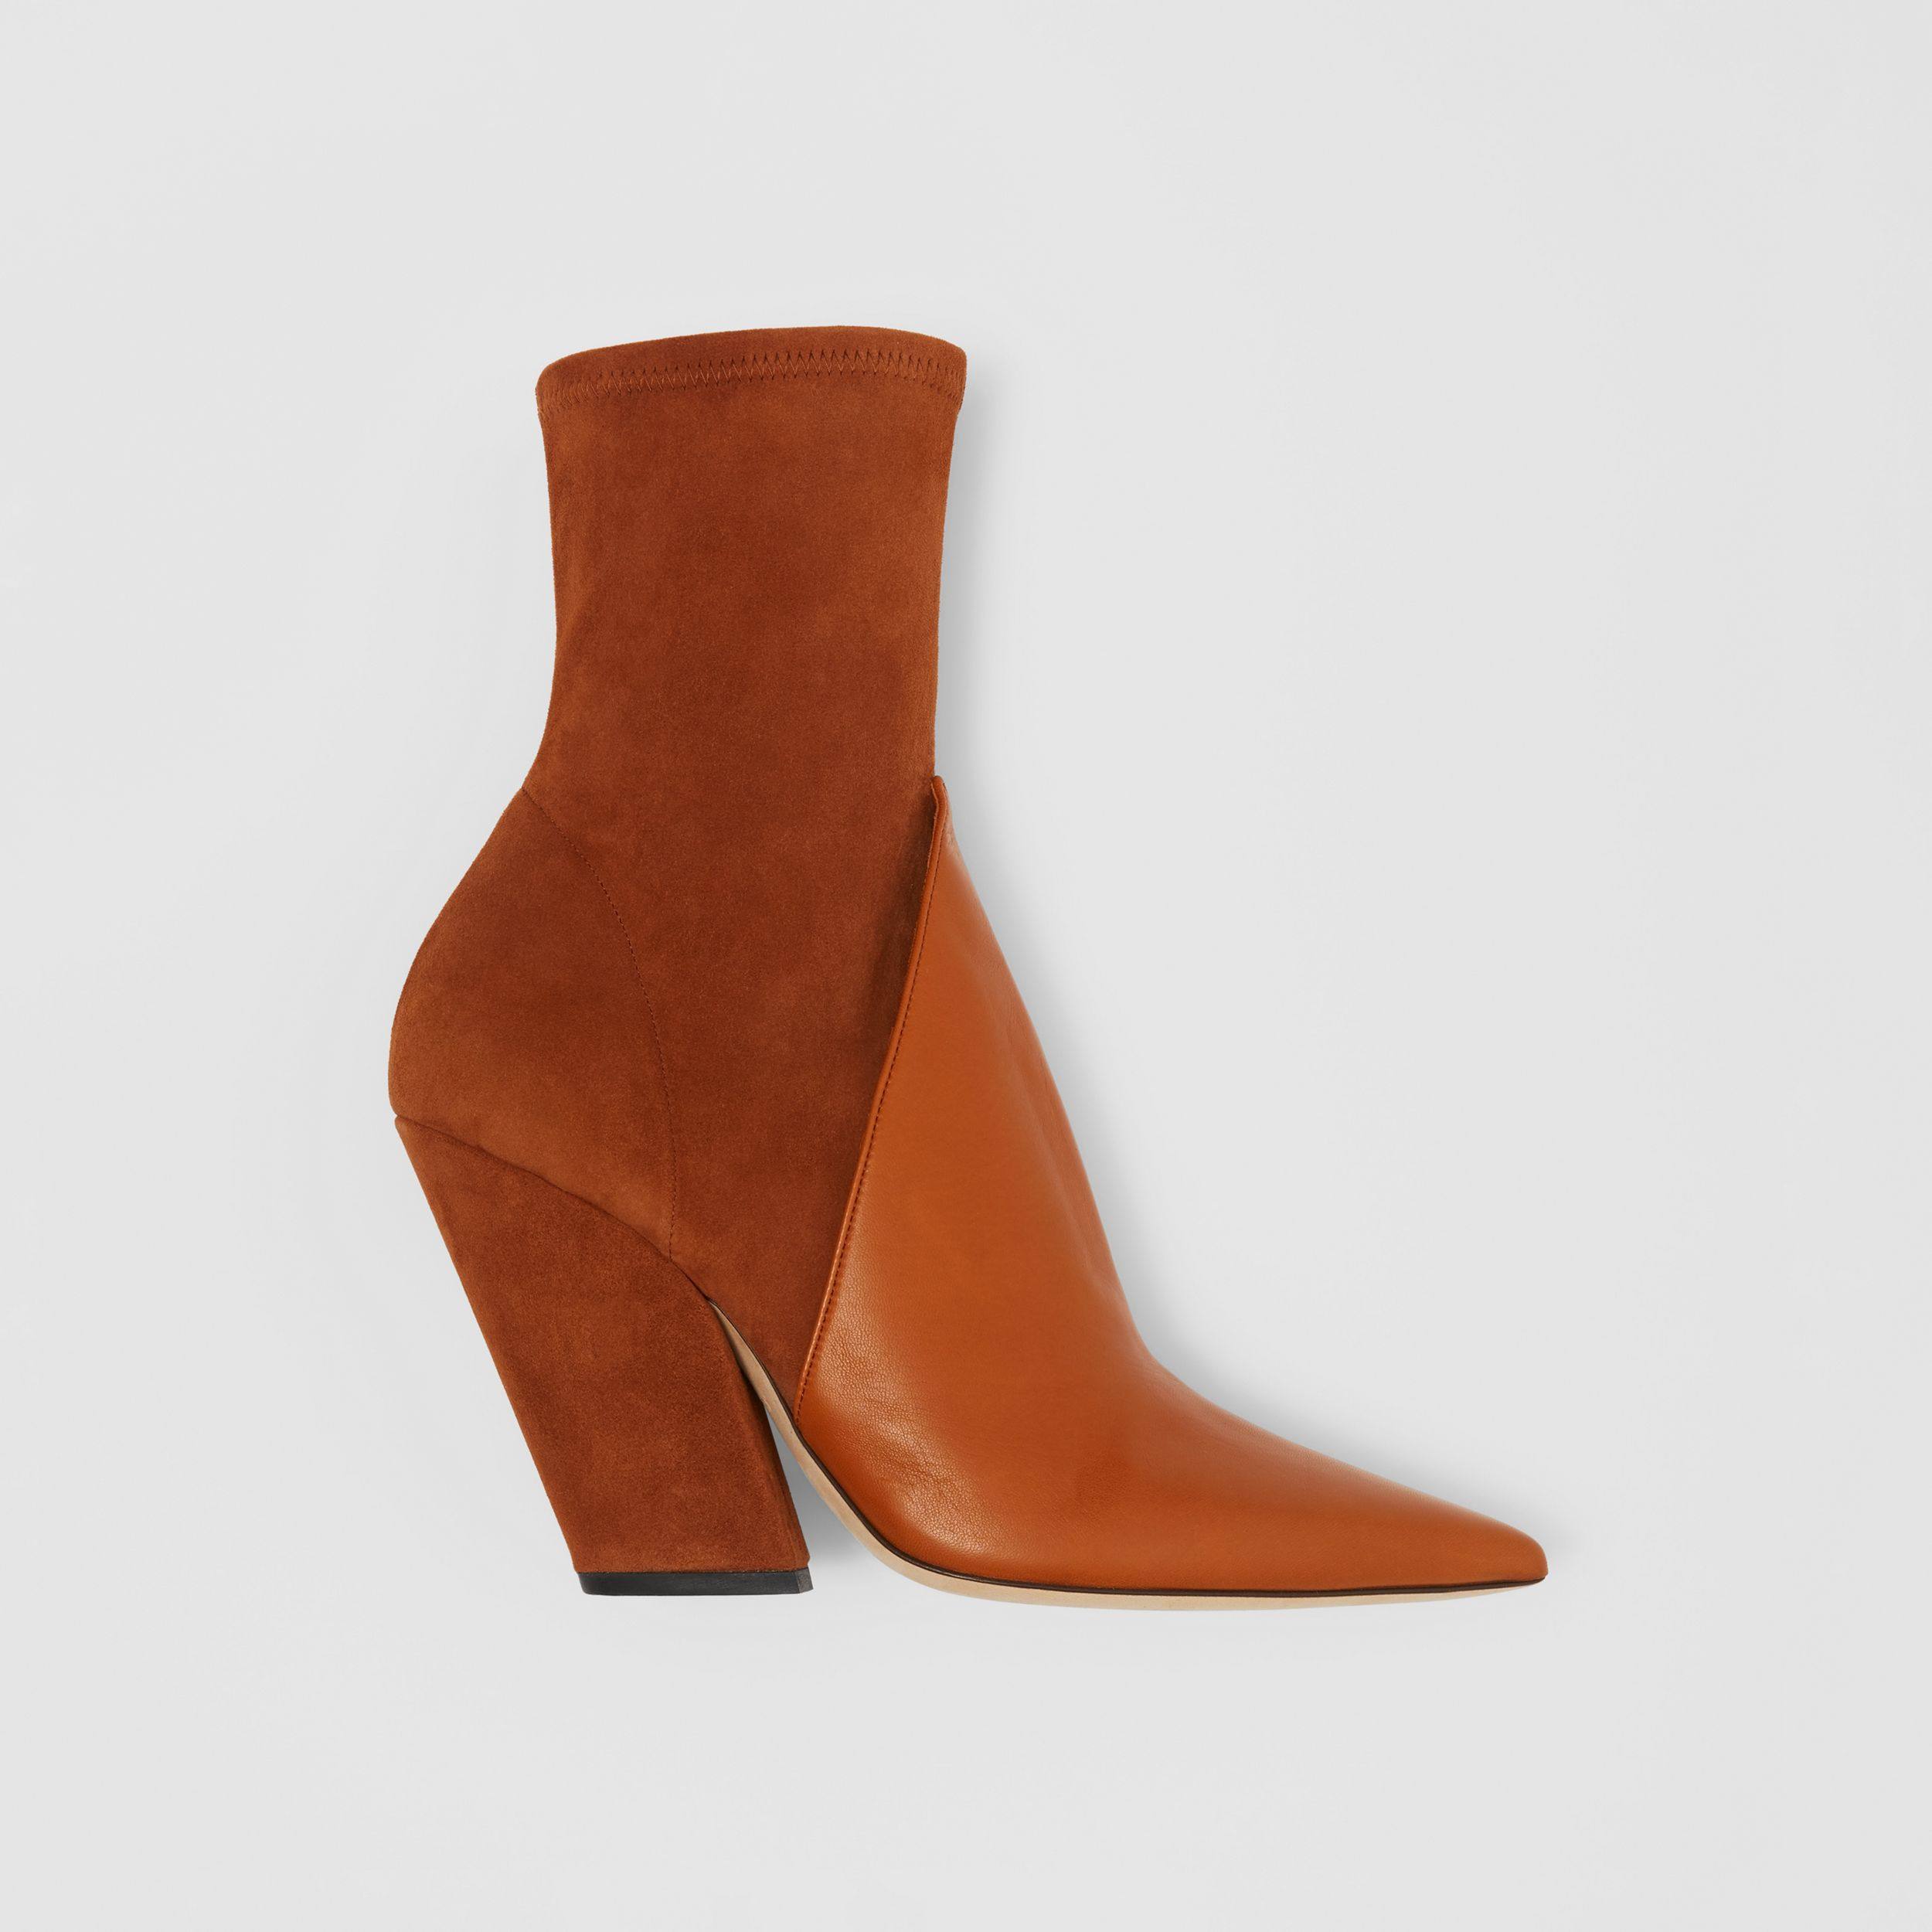 Panelled Suede and Lambskin Ankle Boots in Nutmeg - Women | Burberry - 1